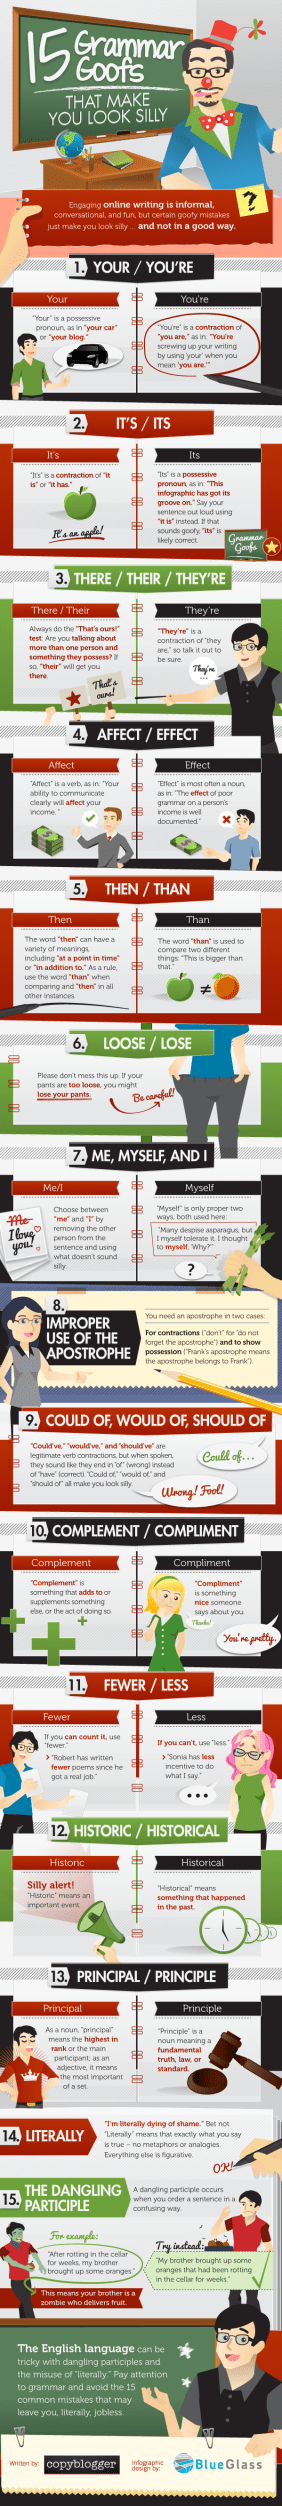 http://dailyinfographic.com/15-grammar-mistakes-that-can-make-you-look-silly-infographic